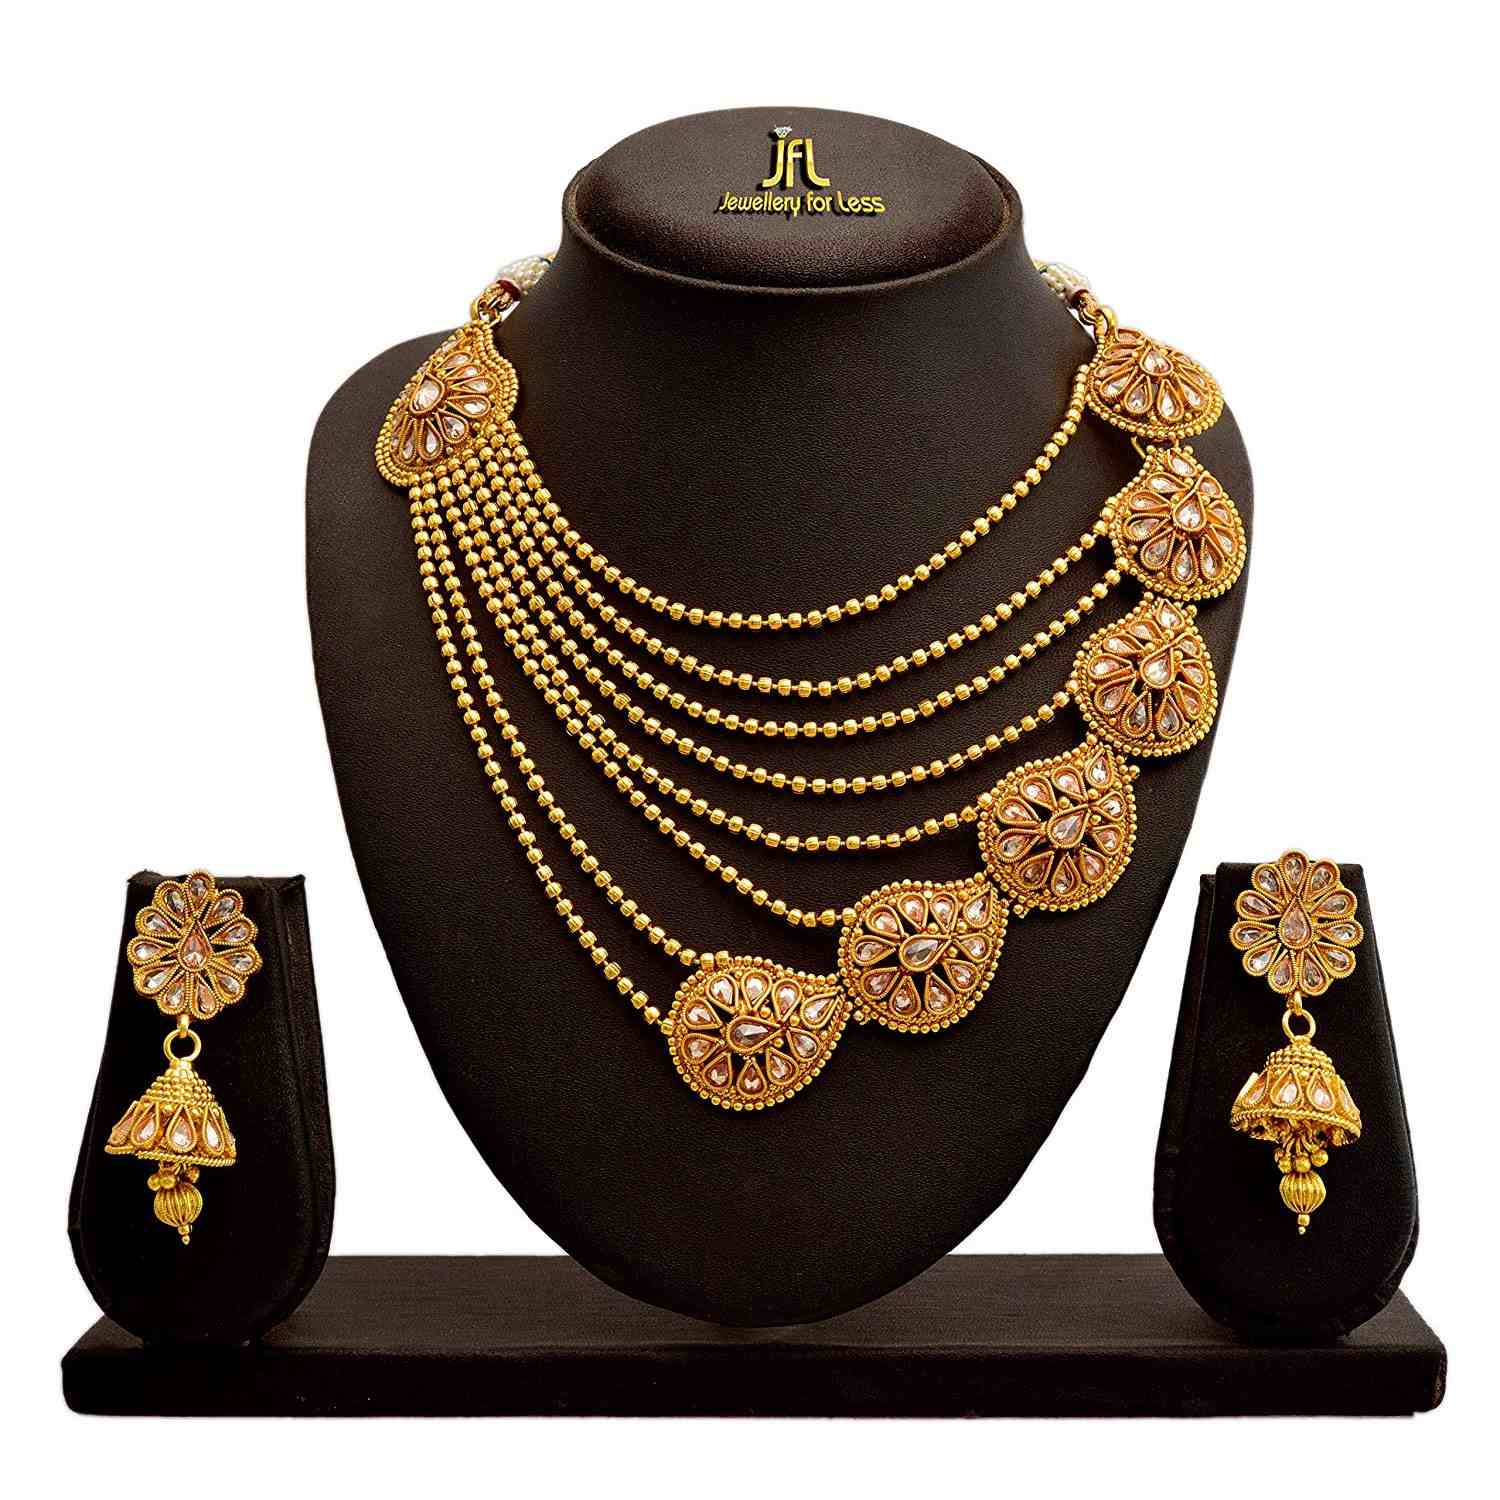 JFL - Traditional Ethnic One Gram Gold Plated Bead Polki Diamond Designer Necklace set with Earring for Women & Girls.